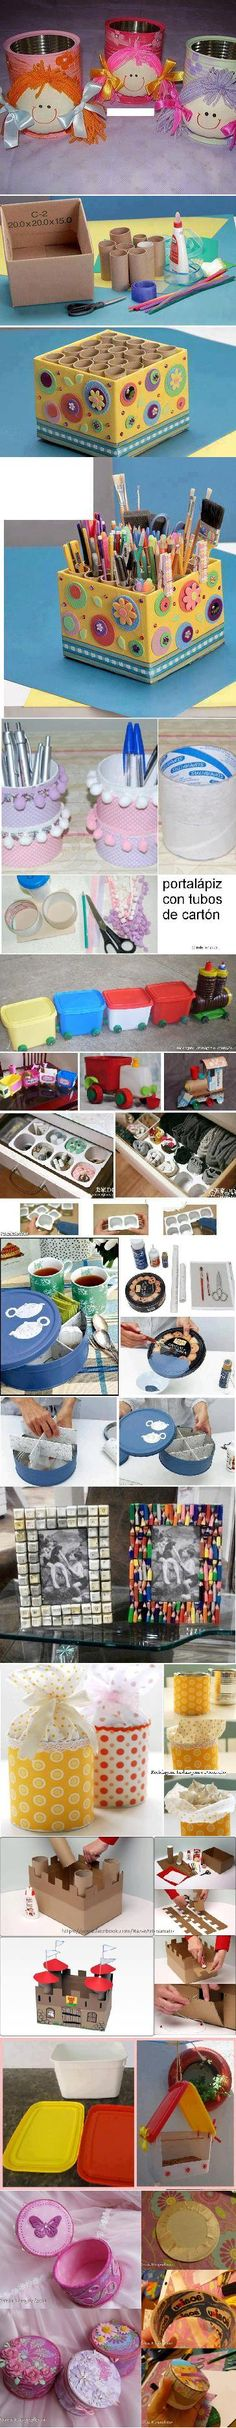 DIY ;);) Great ideas !!